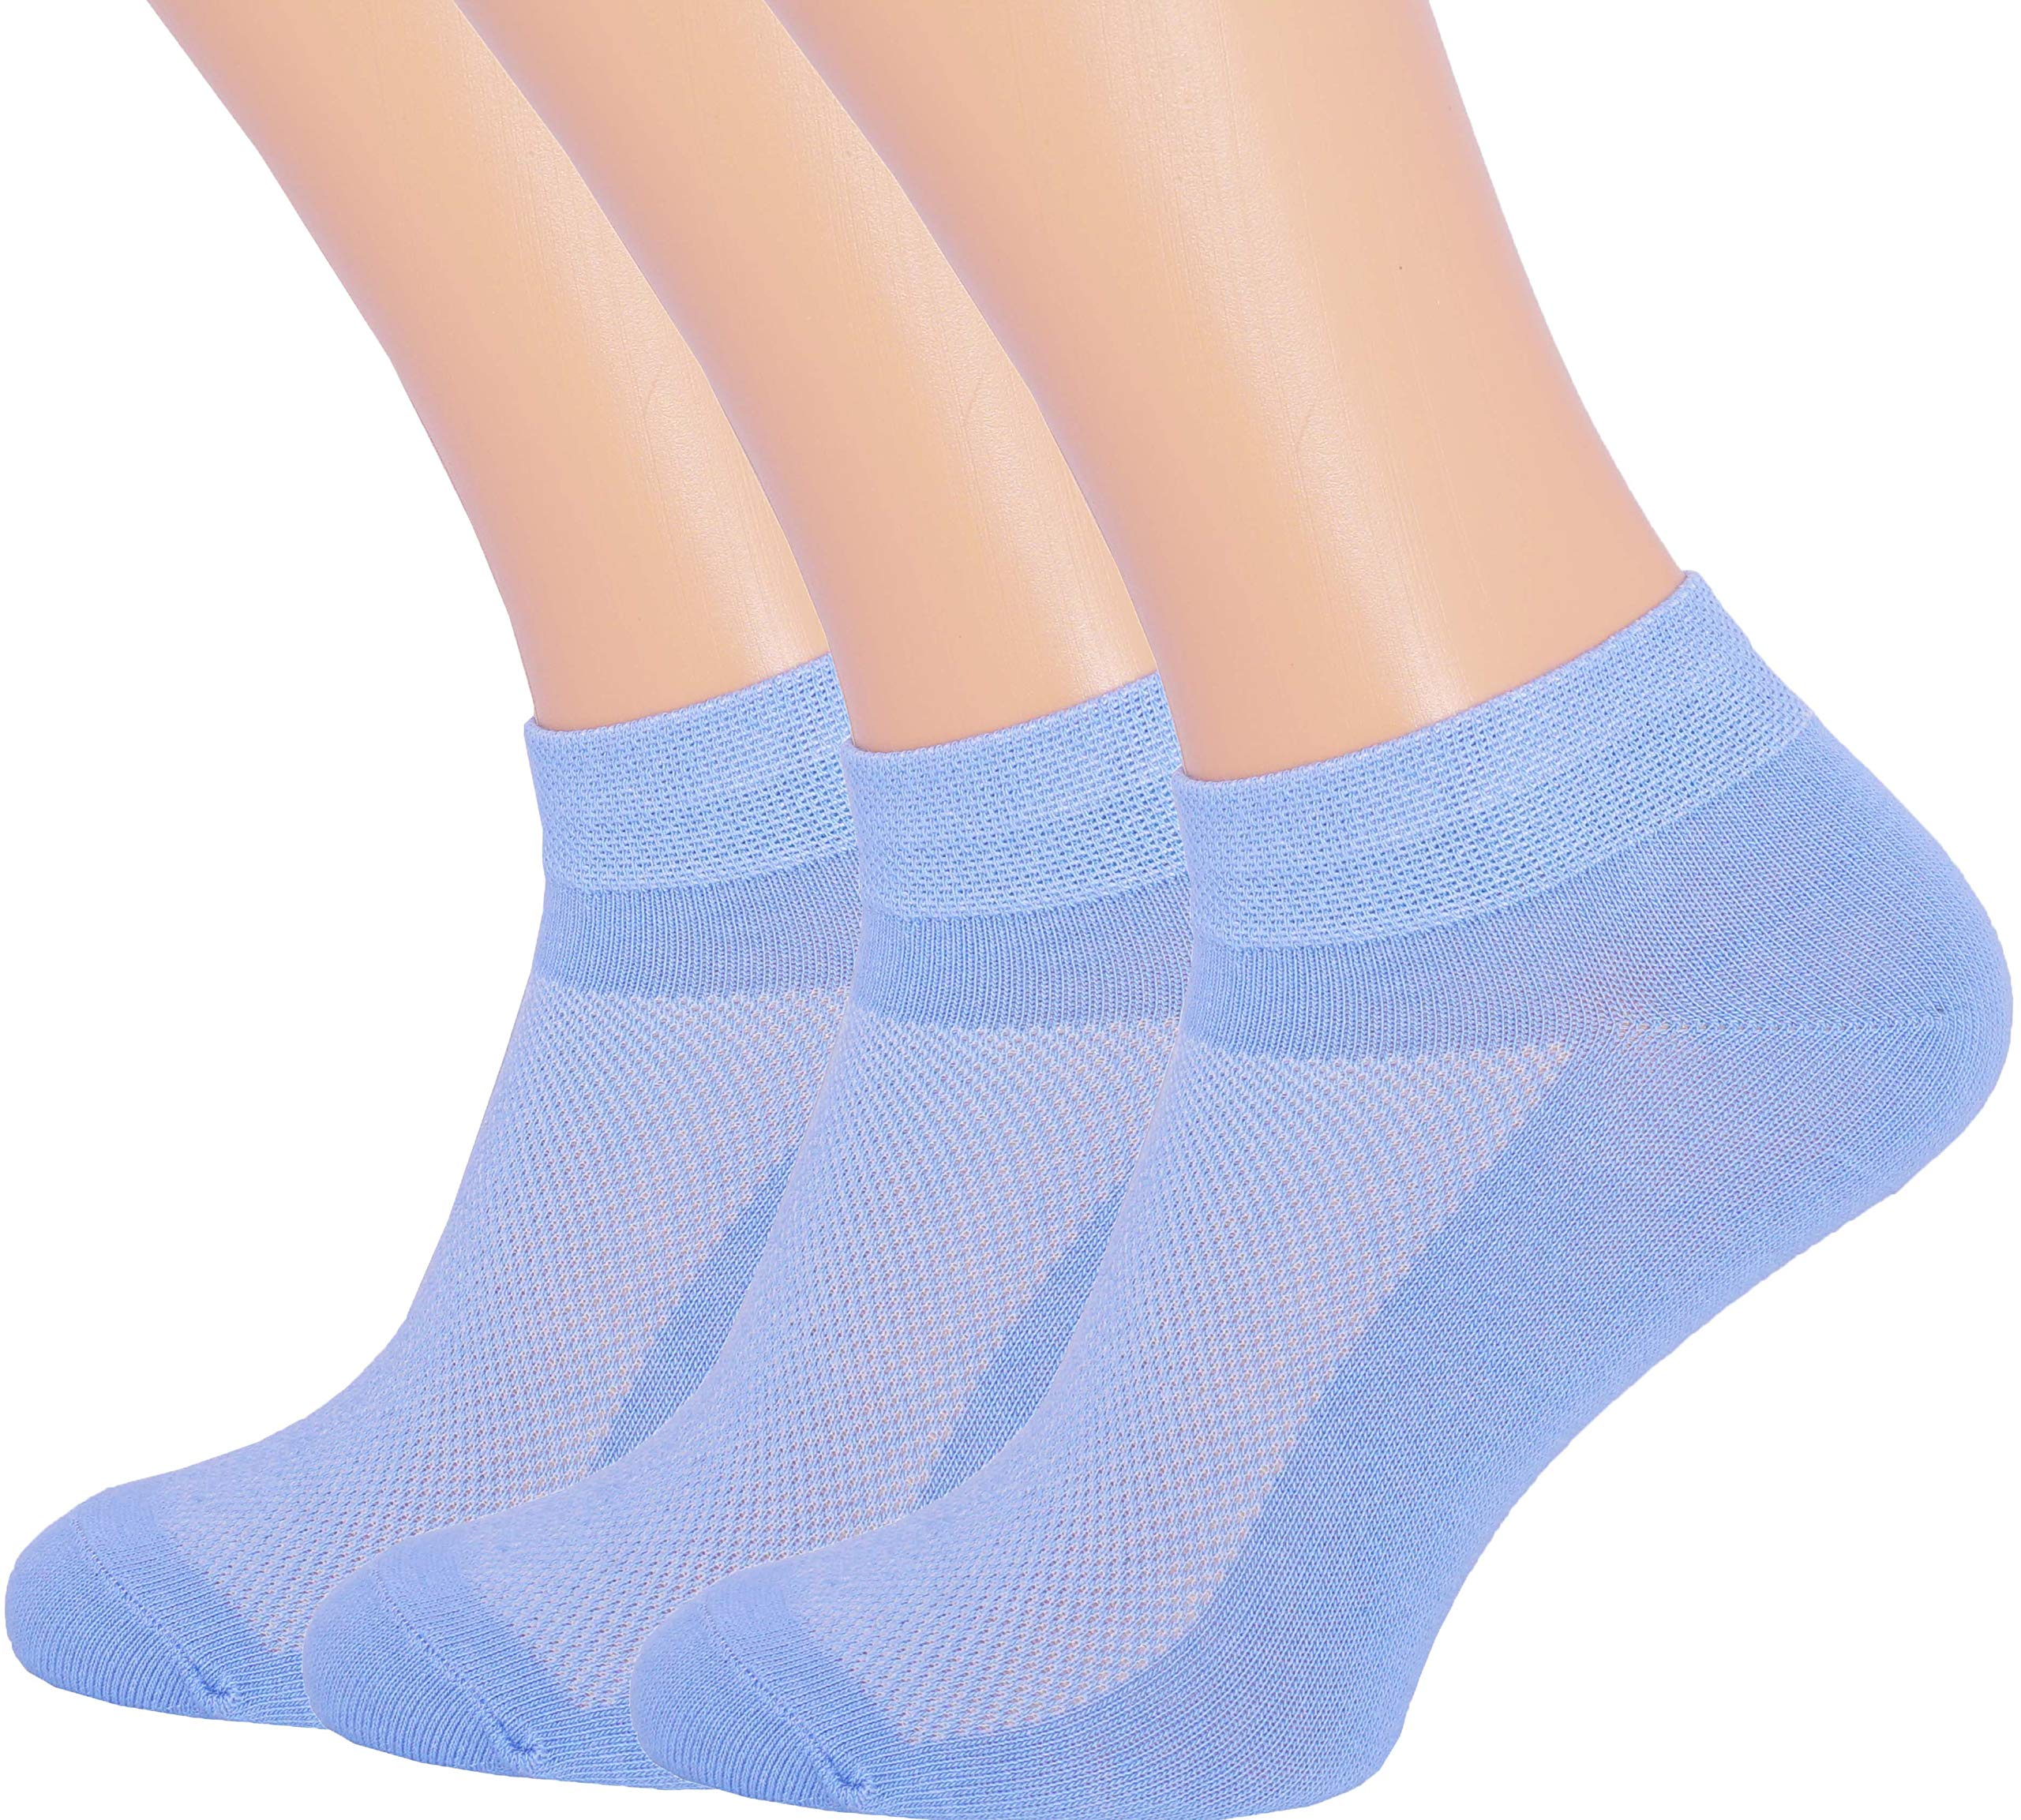 3 Pack Unisex Ultra Thin Breathable Dry Fit Low Cut Running Ankle Socks black white grey color